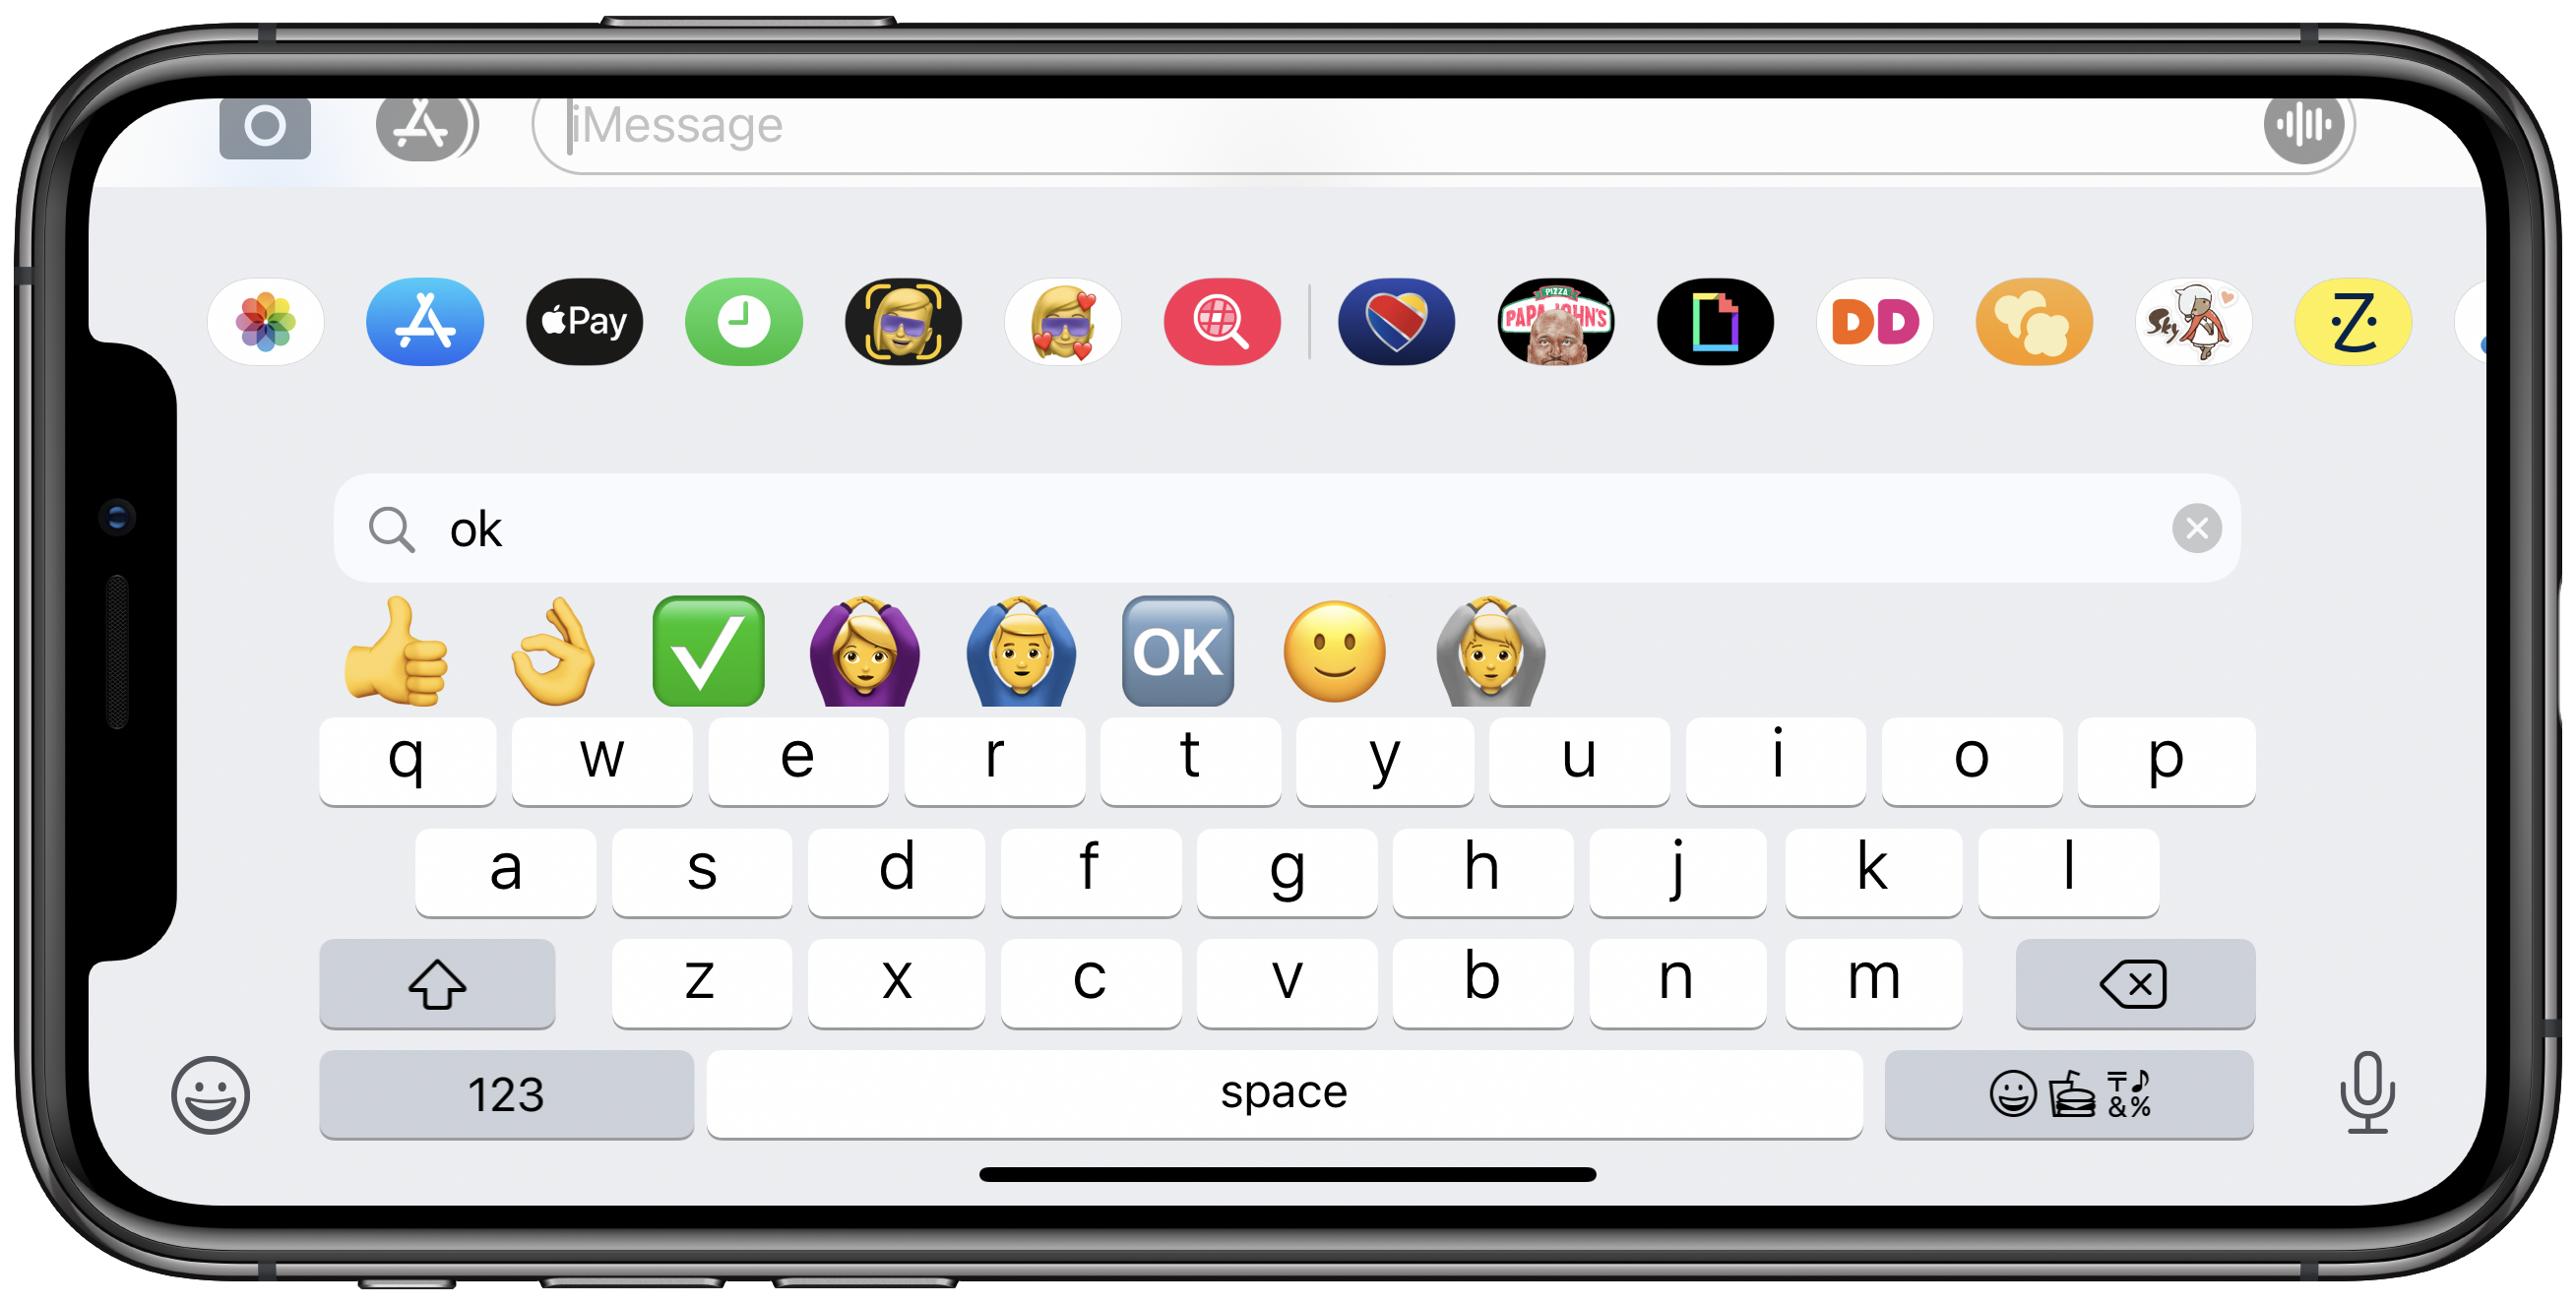 Emoji search is here at last.